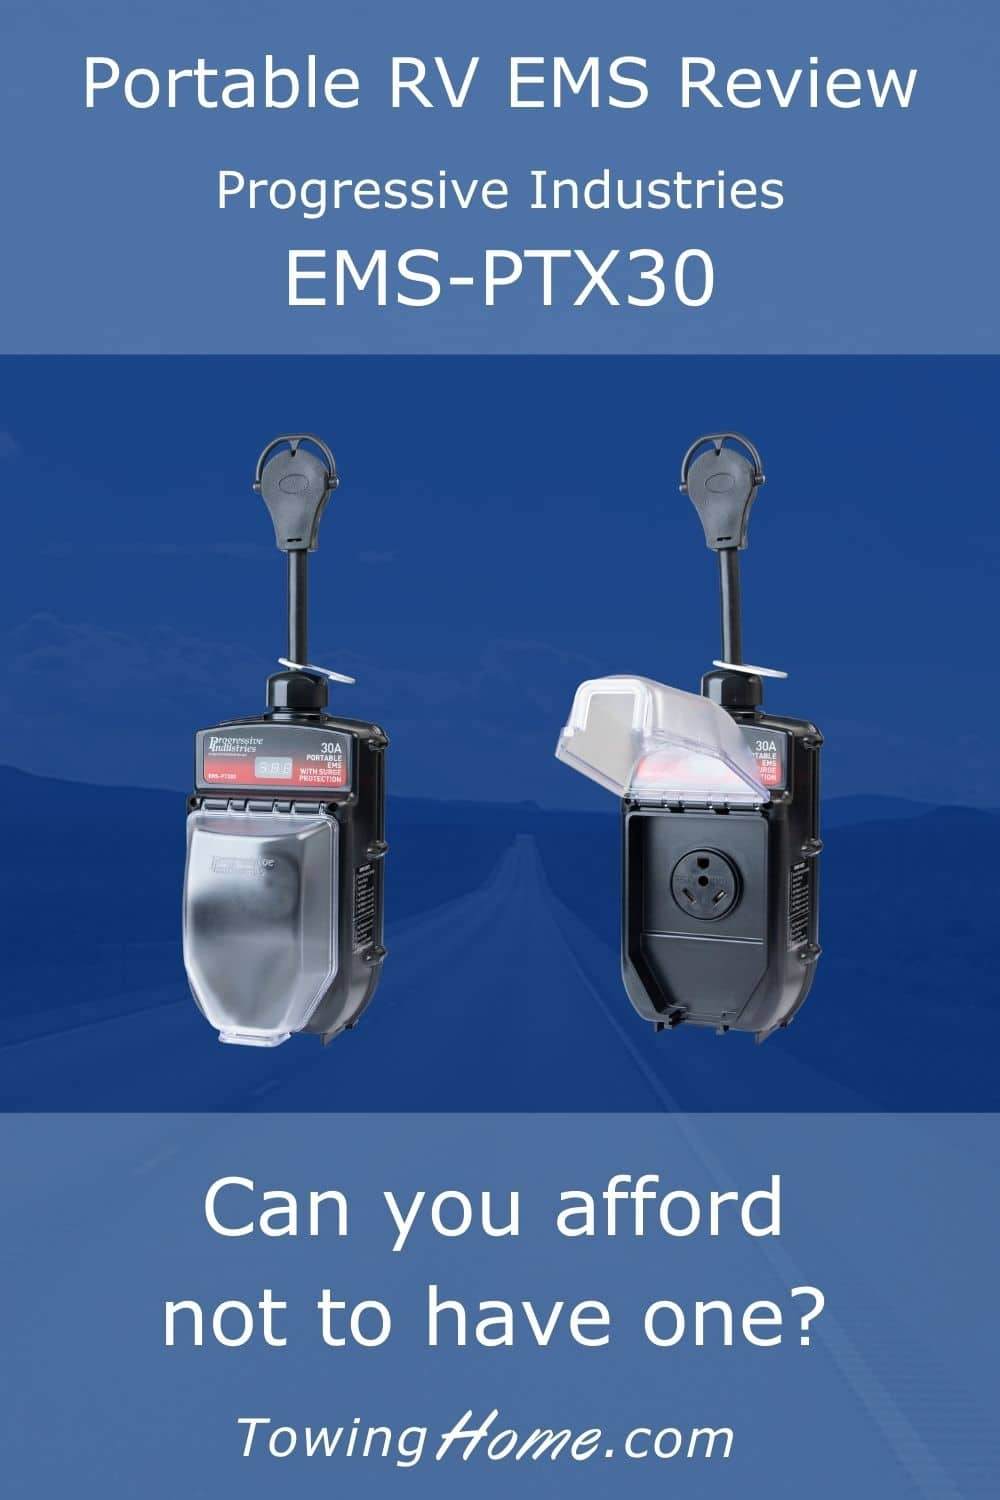 EMS-PT30X Review - Can You Afford Not to Have One?